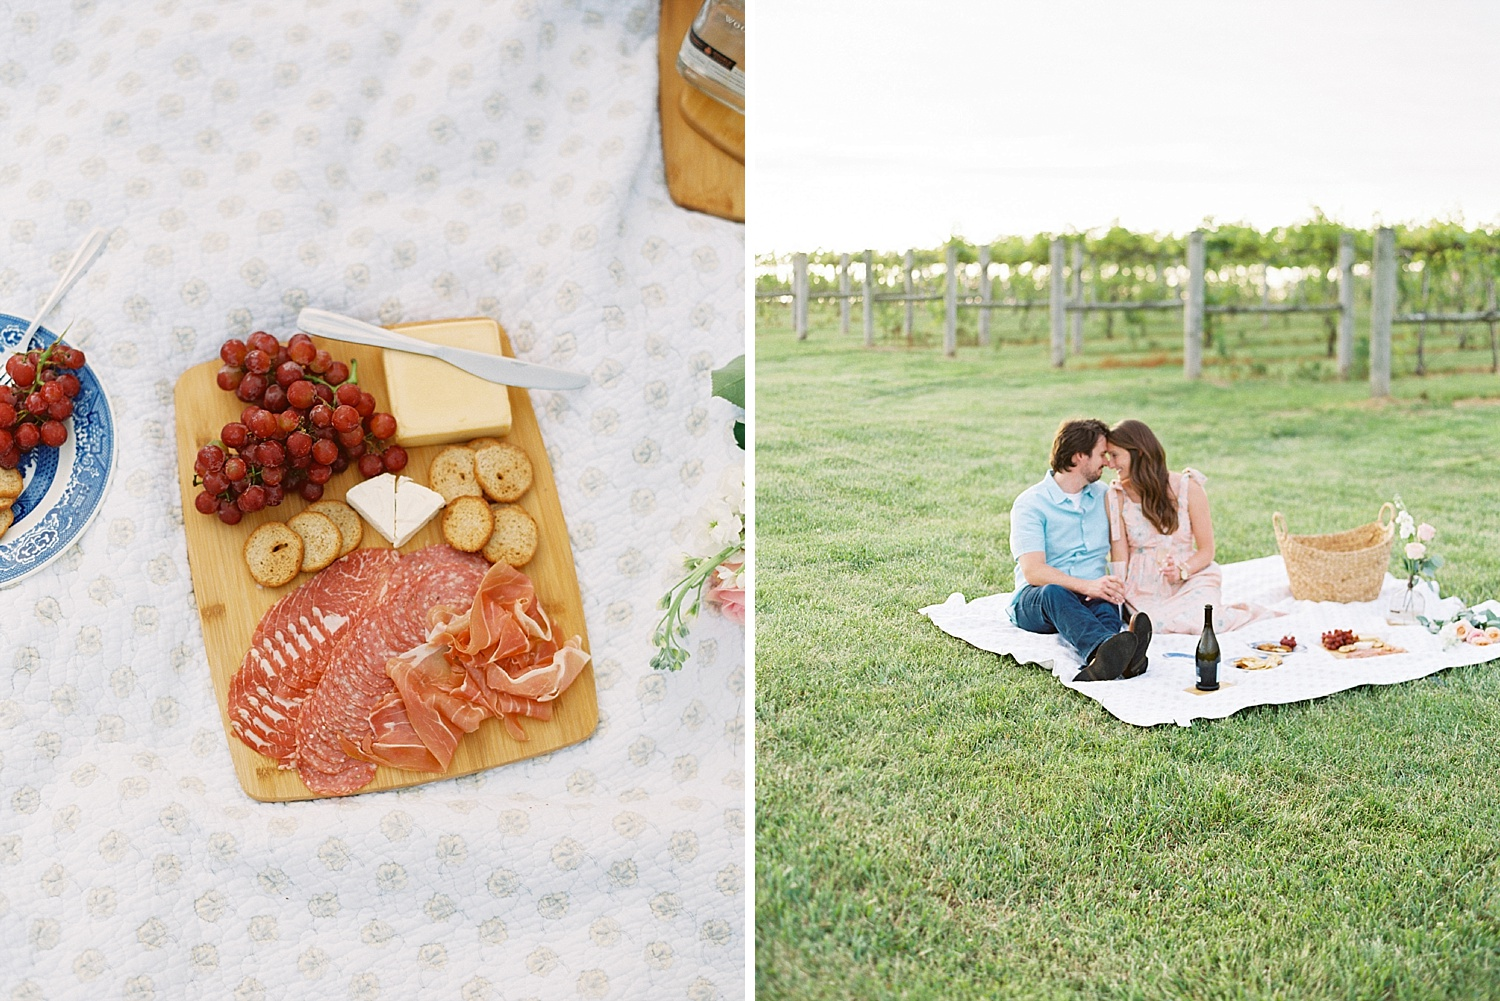 Downtown Lexington Engagement Session Talon Winery Picnic Engagement Session Gal Meets Glam Anthropologie Dress Laura Bodnar Photography Lexington Wedding Photographer Film Photography_0014-1.jpg